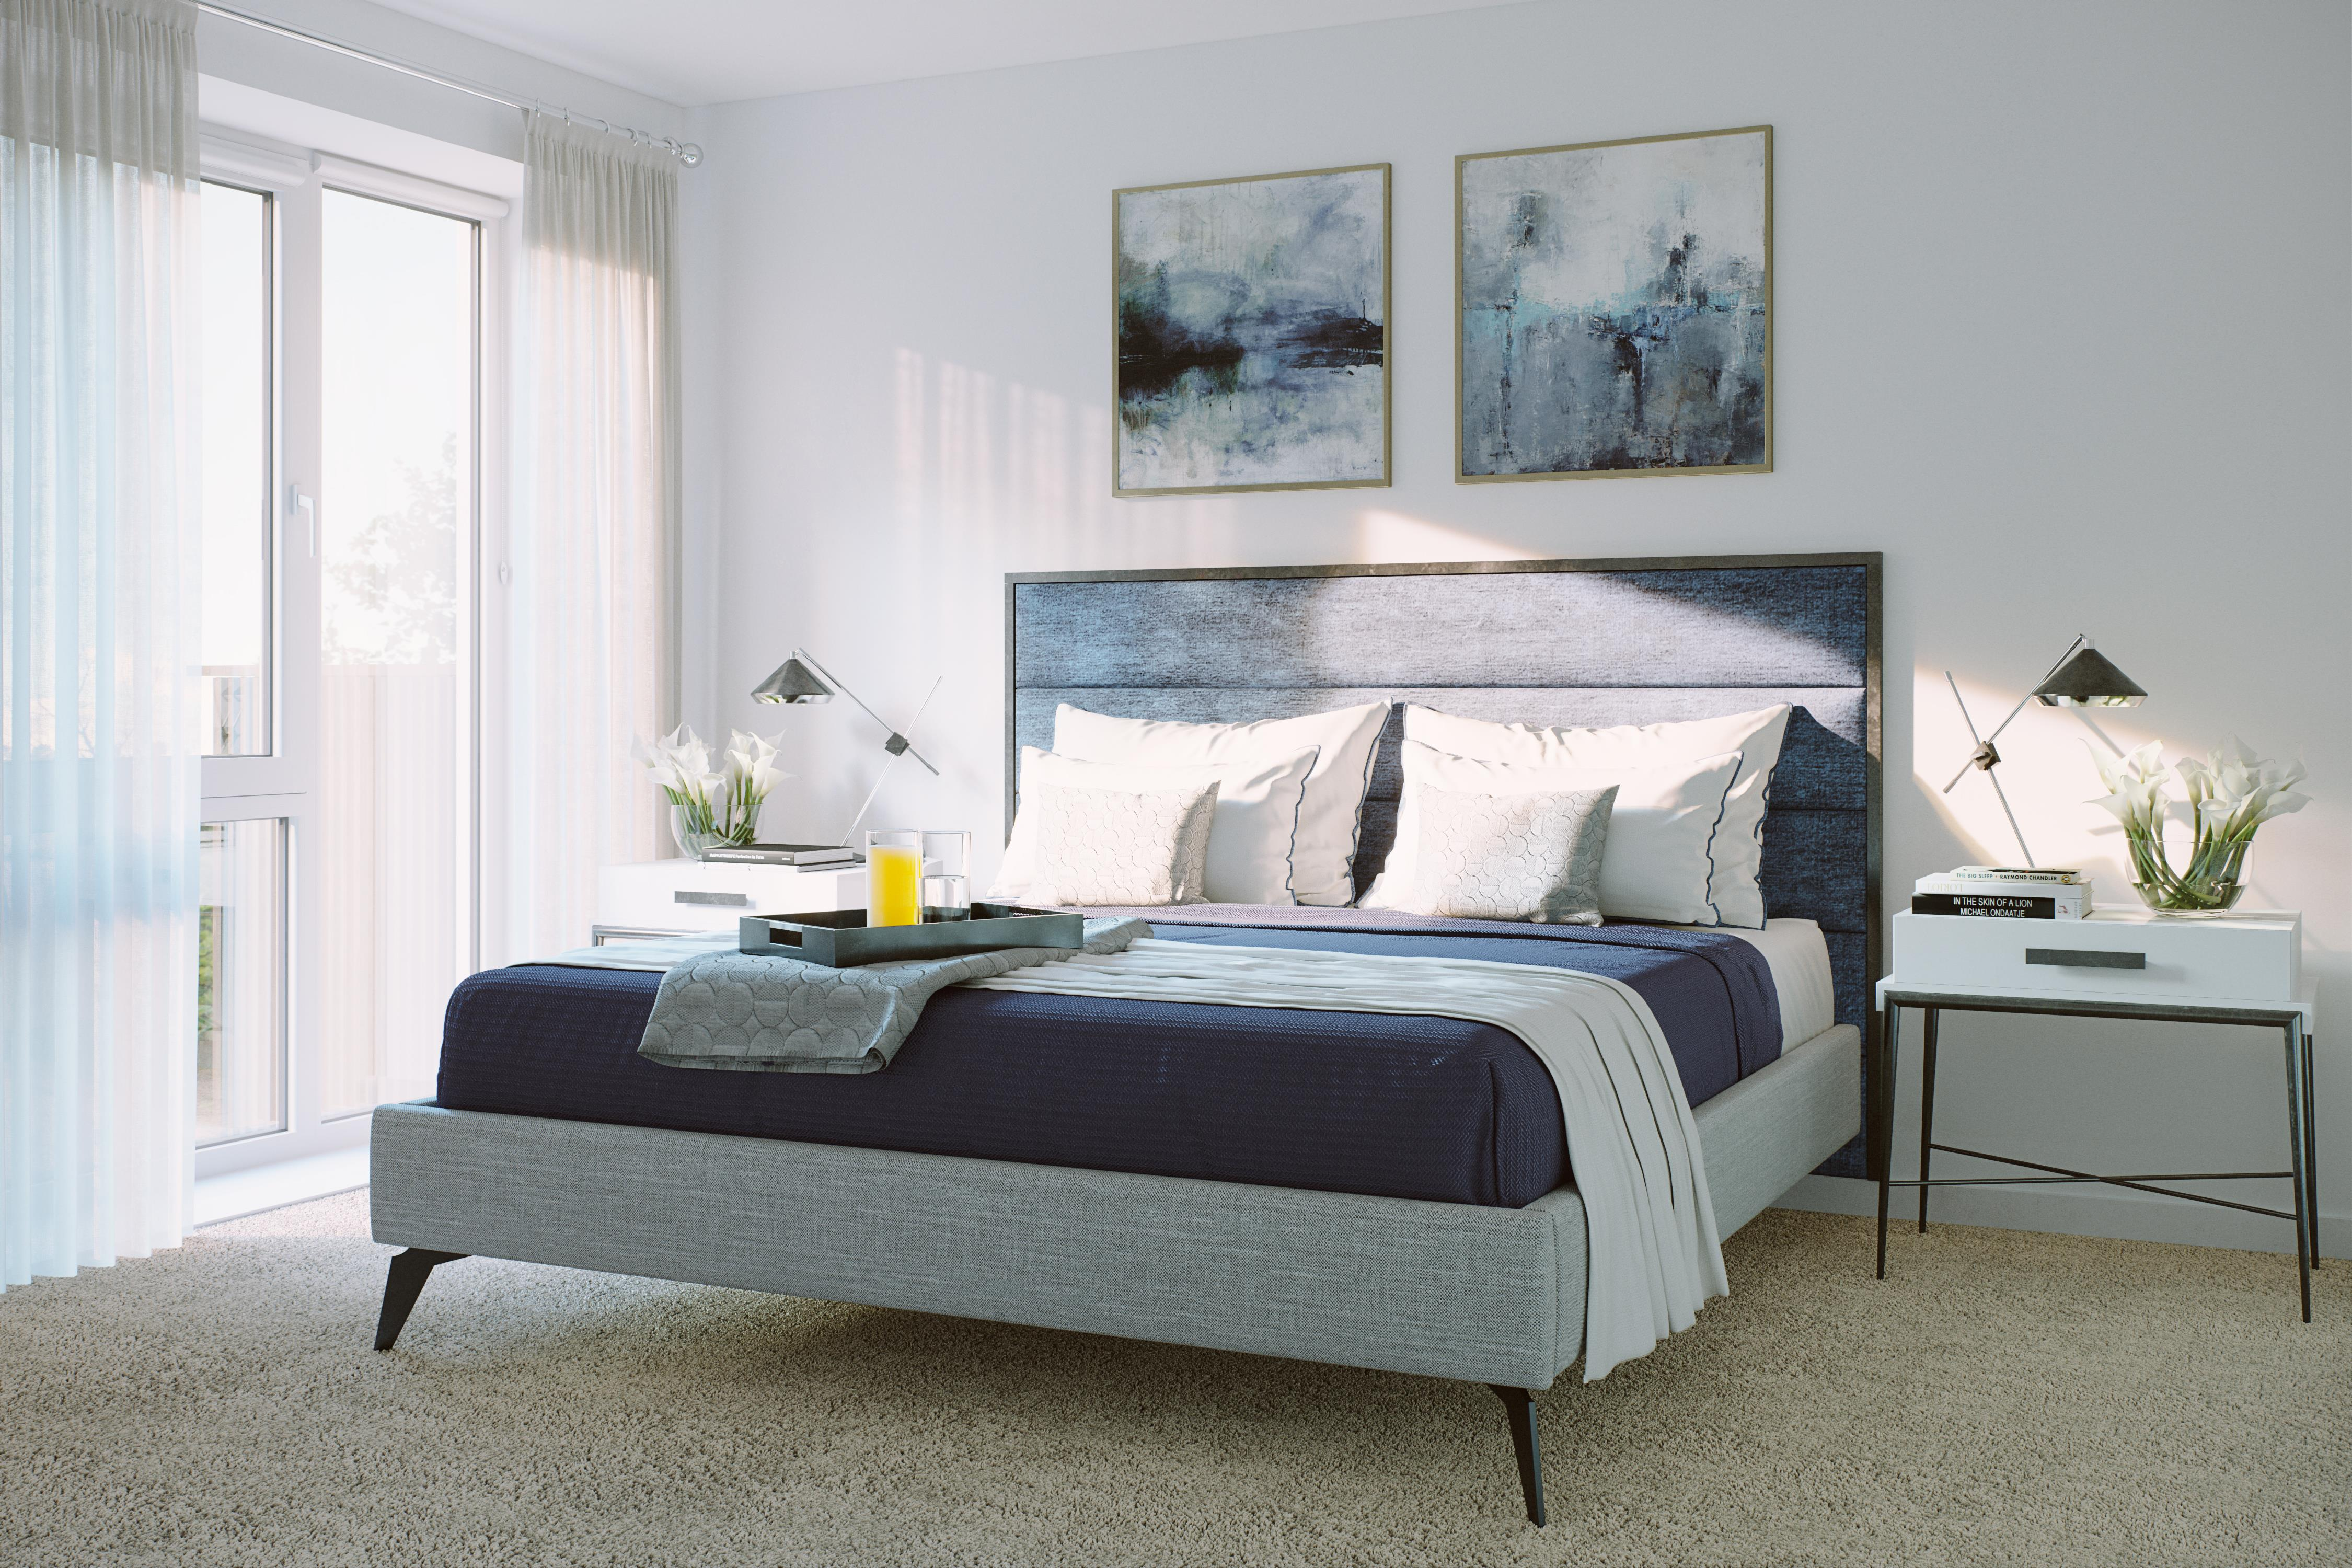 Southern Housing,The Featherstone,Southern Space,Master Bedroom